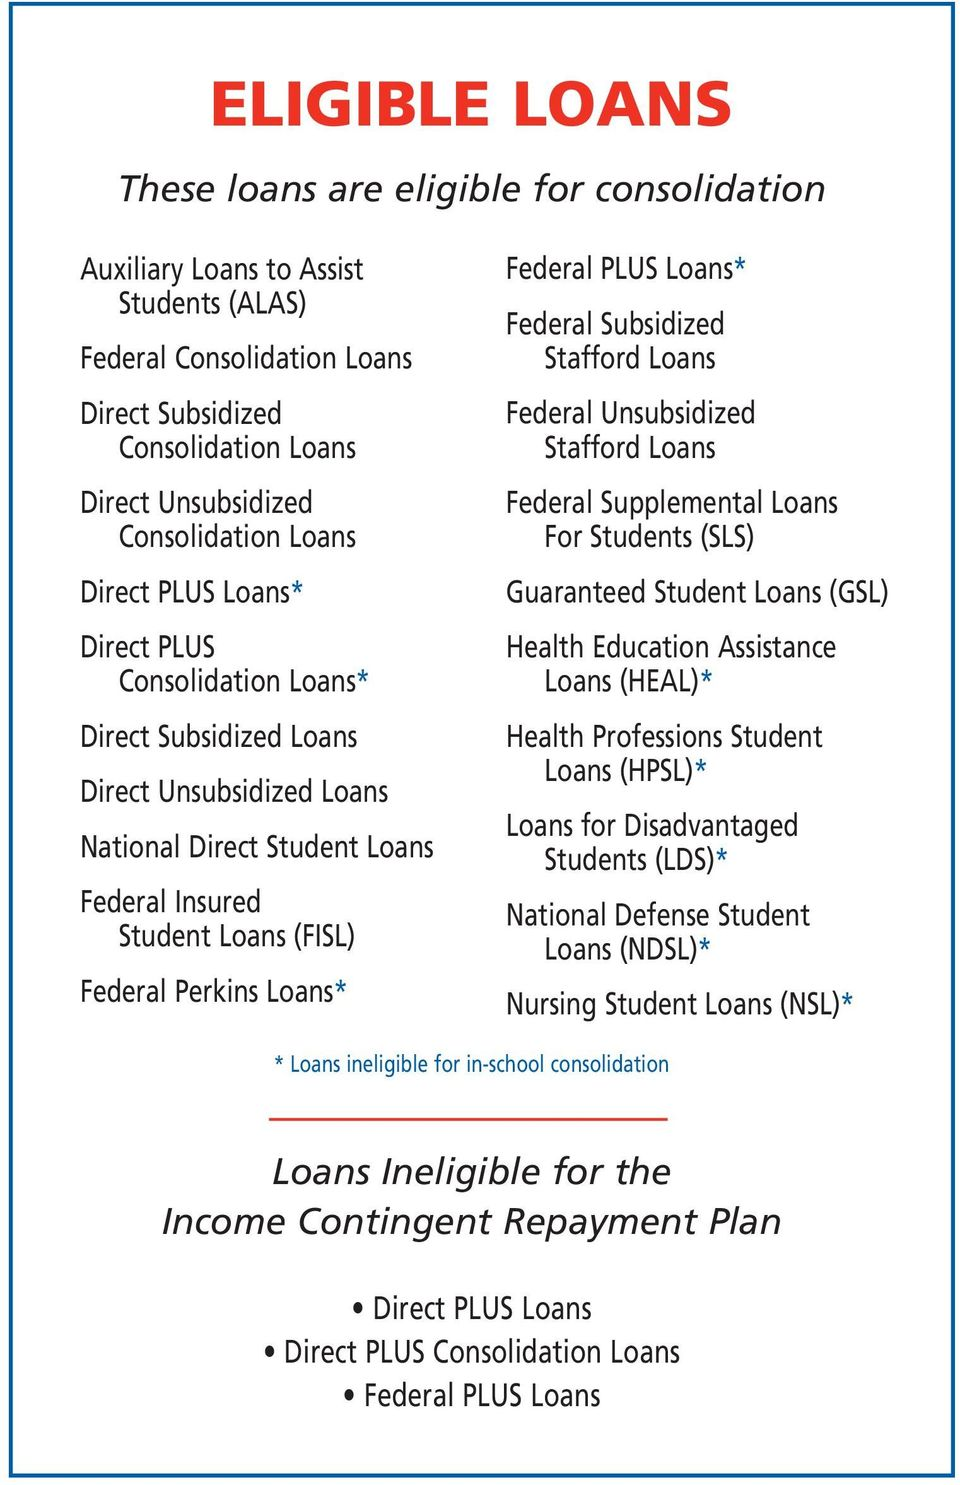 Federal PLUS Loans* Federal Subsidized Stafford Loans Federal Unsubsidized Stafford Loans Federal Supplemental Loans For Students (SLS) Guaranteed Student Loans (GSL) Health Education Assistance